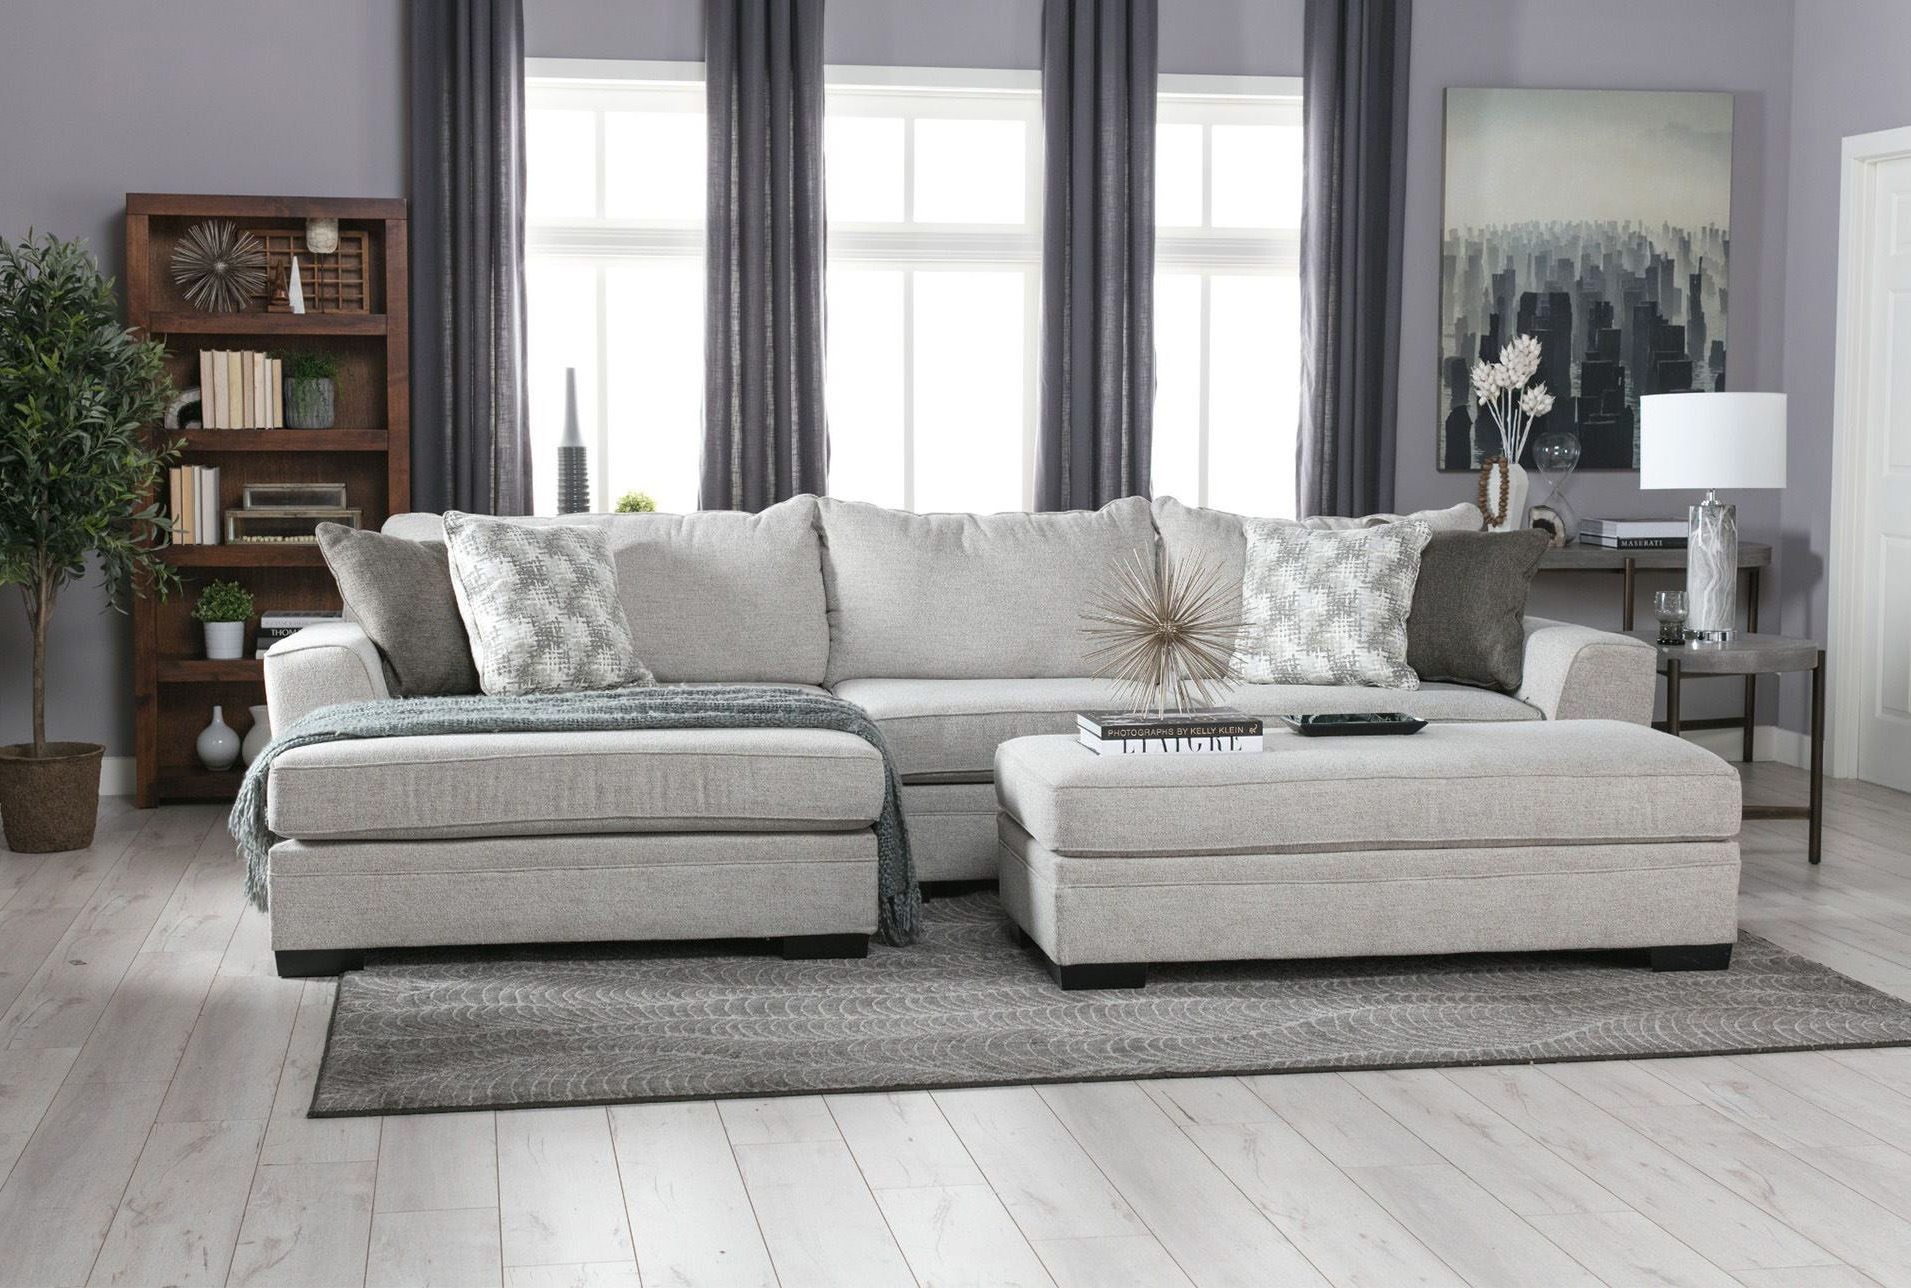 2019 Delano 2 Piece Sectionals With Raf Oversized Chaise Inside Delano 2 Piece Sectional W/raf Oversized Chaise In 2018 (Gallery 3 of 20)